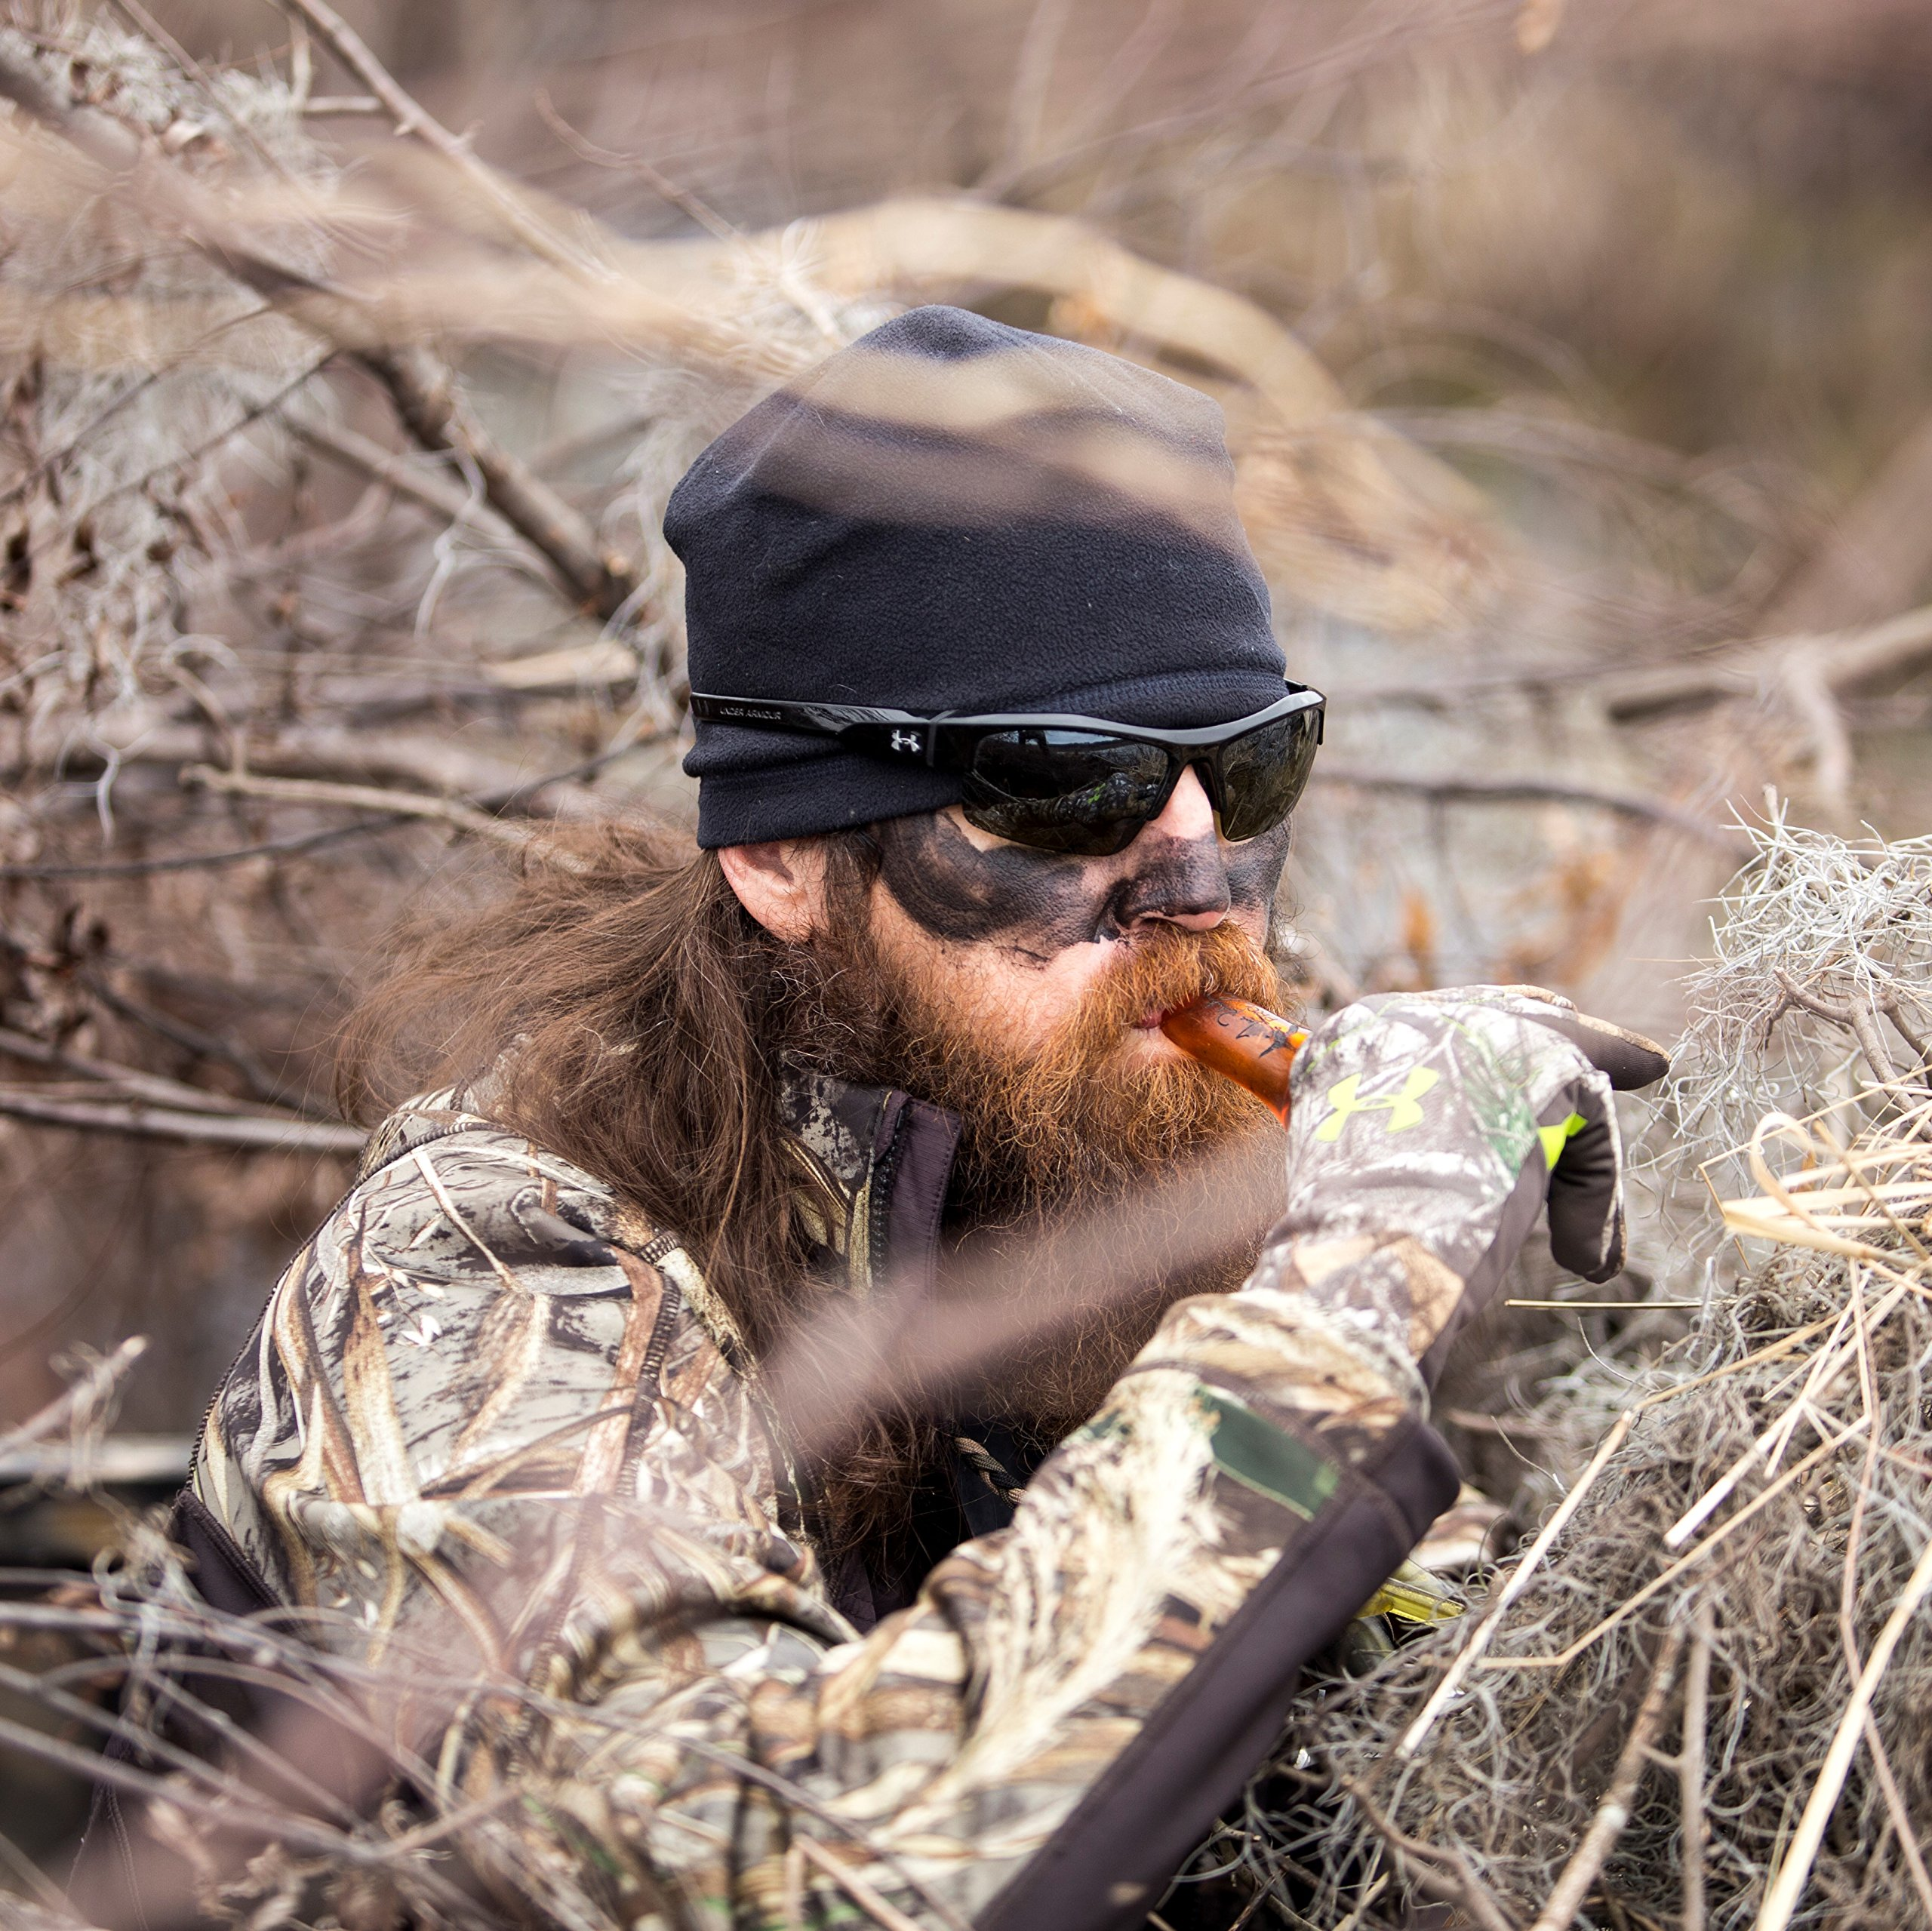 DUCK COMMANDER Jase Robertson Pro Series Duck Call, Orange Acrylic by DUCK COMMANDER (Image #6)